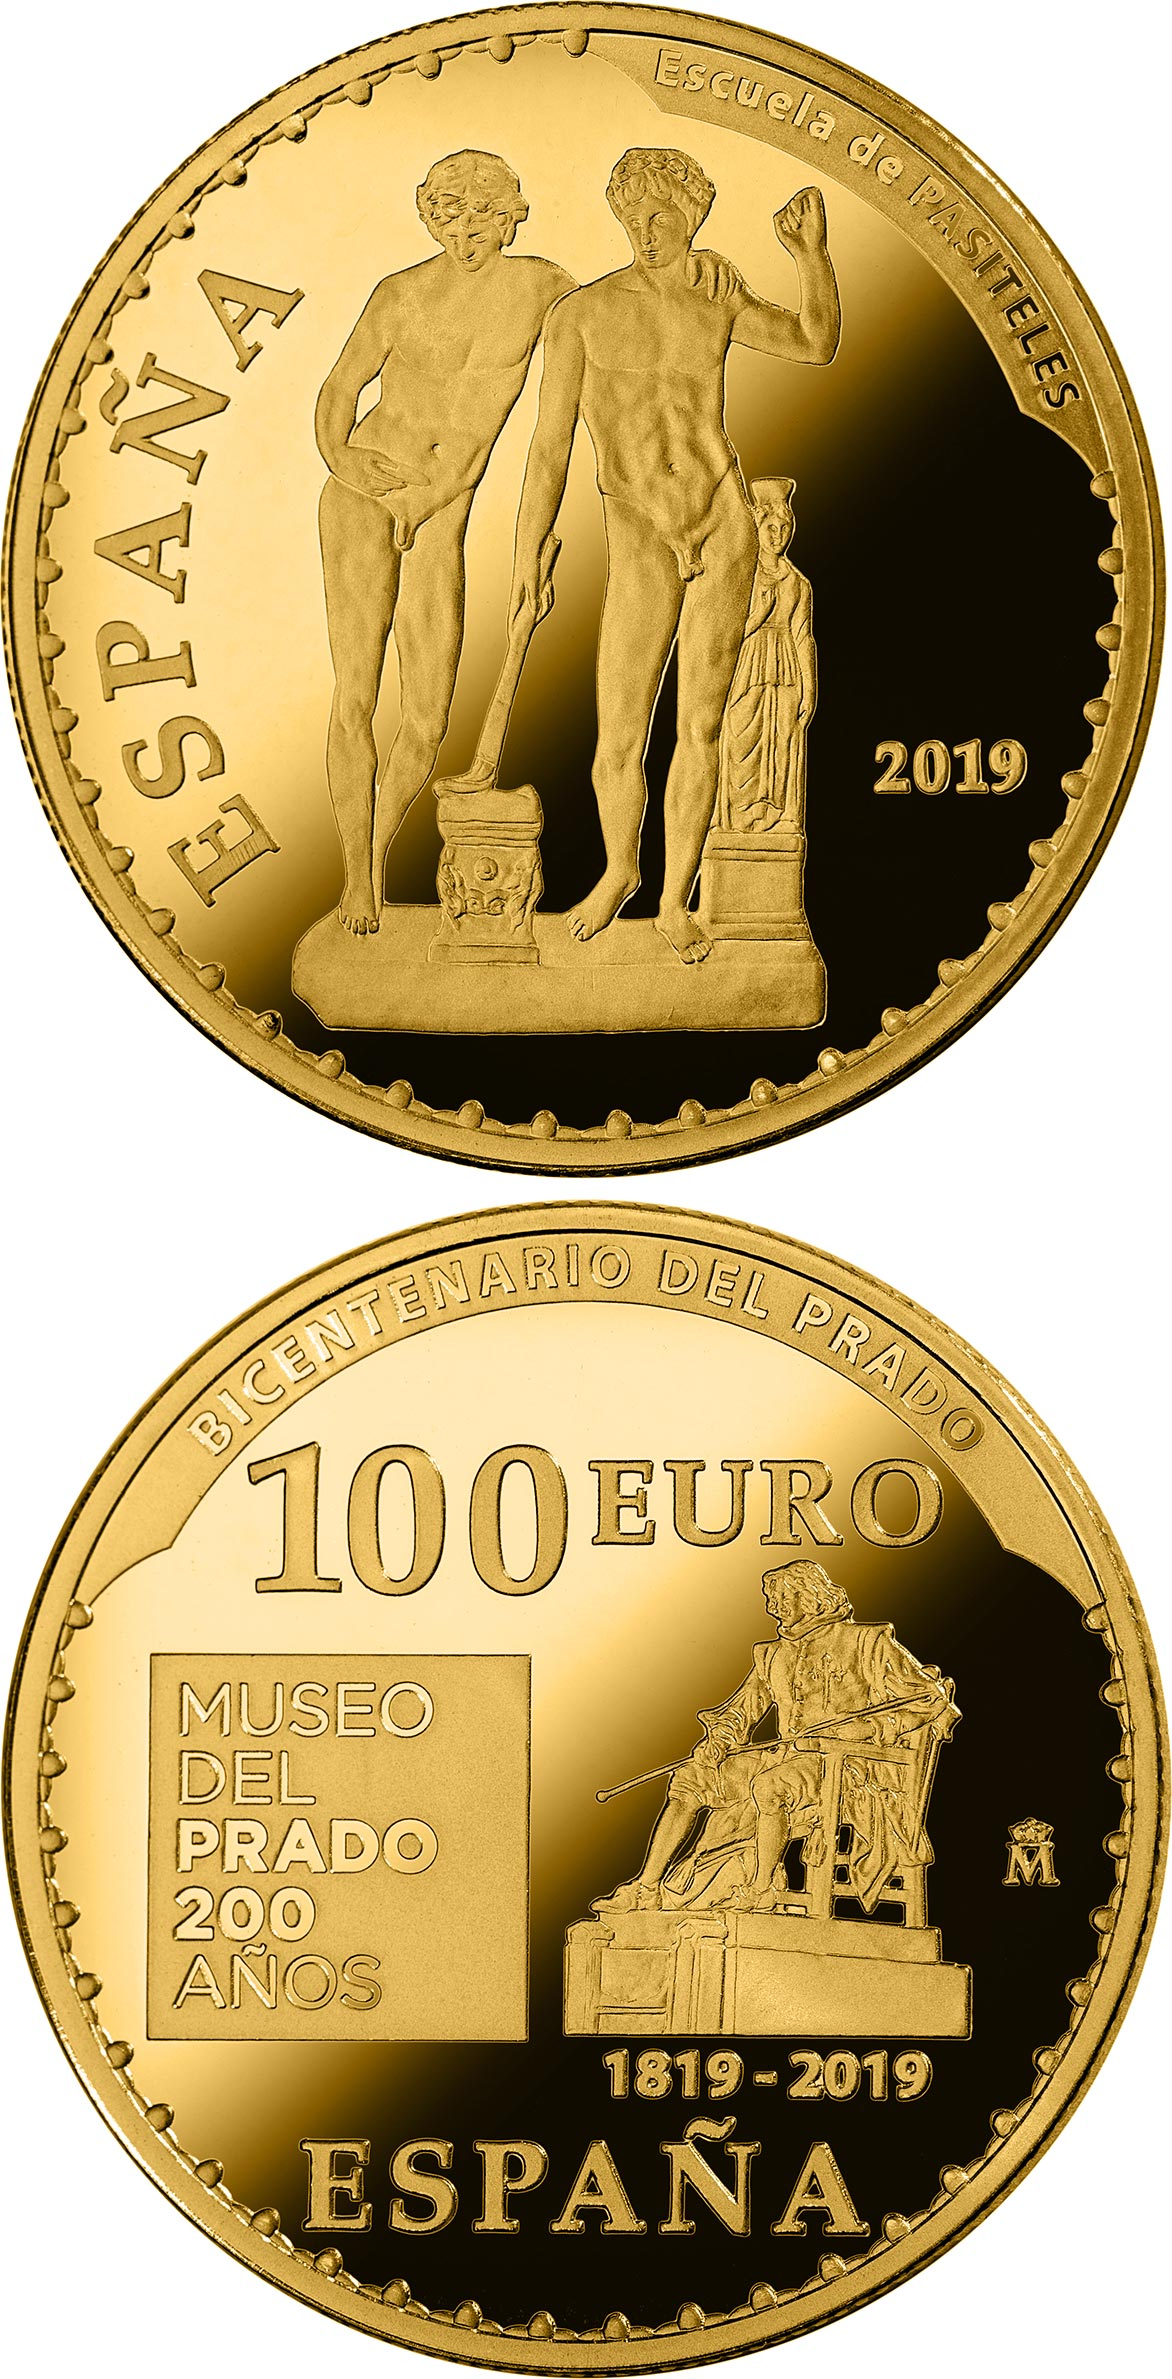 Image of 100 euro coin - Bicentenary of the Museum del Prado - Orestes y Pílades or Grupo de San Ildefonso | Spain 2019.  The Gold coin is of Proof quality.